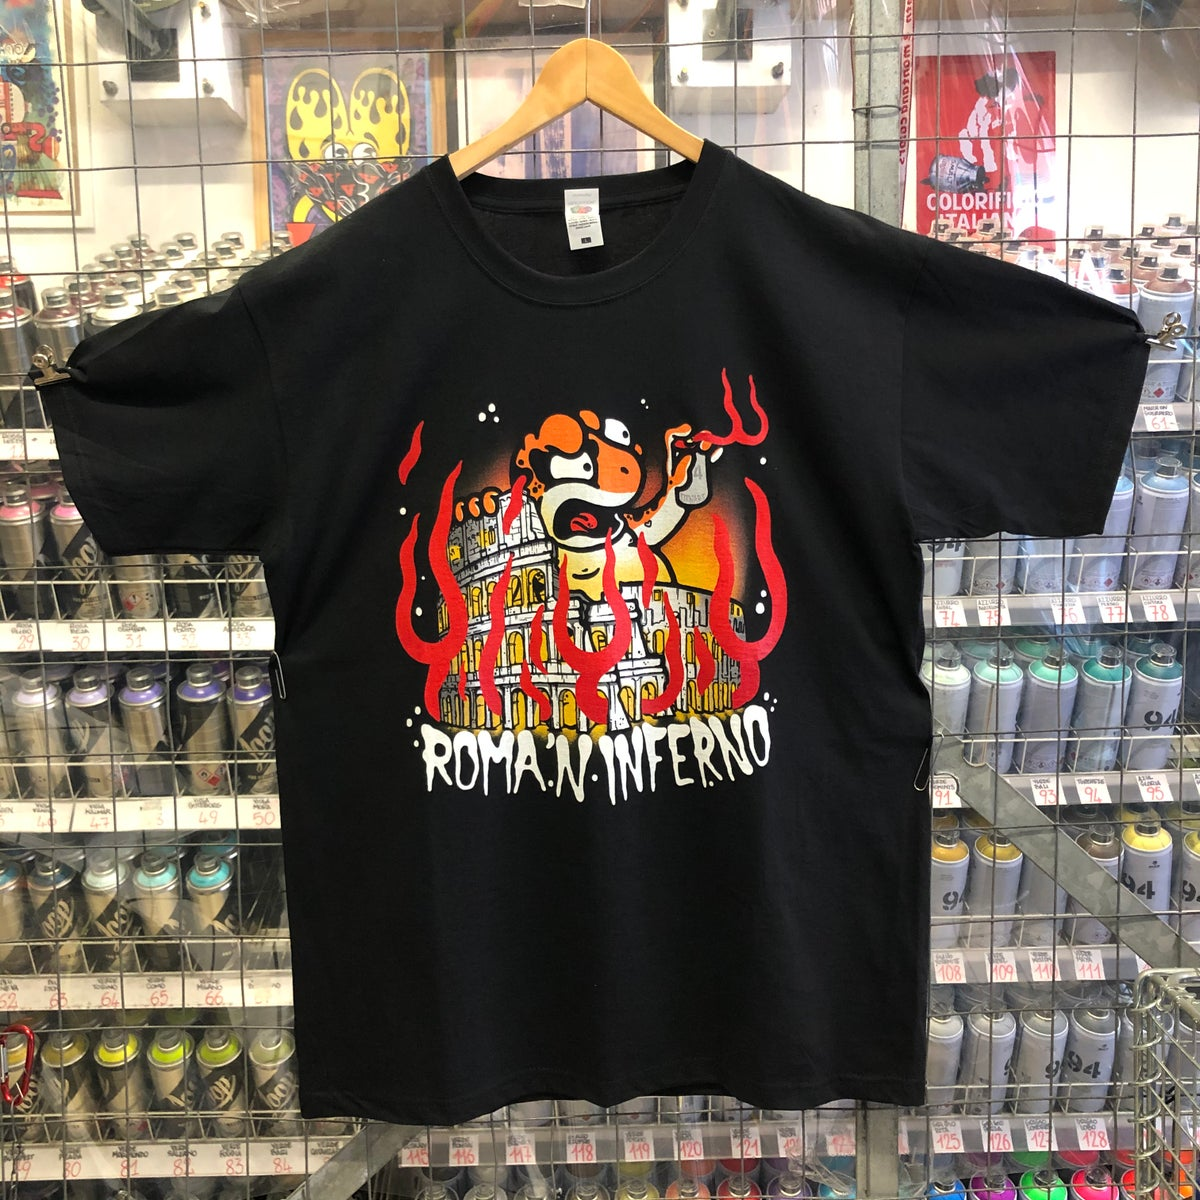 Image of tshirt ROMA 'N INFERNO